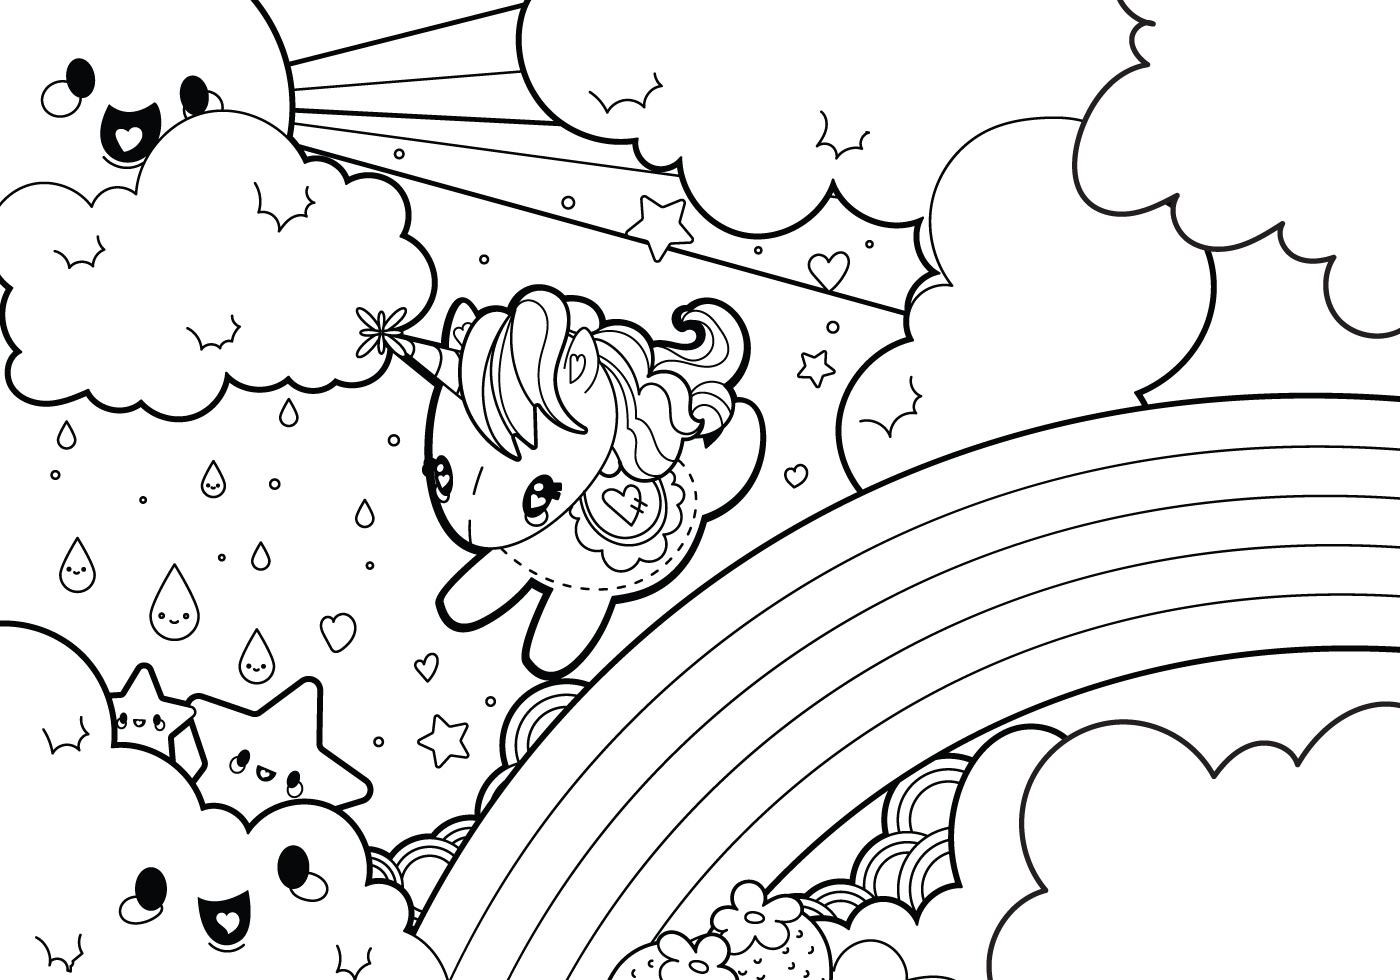 Rain rainbow unicorn coloring page